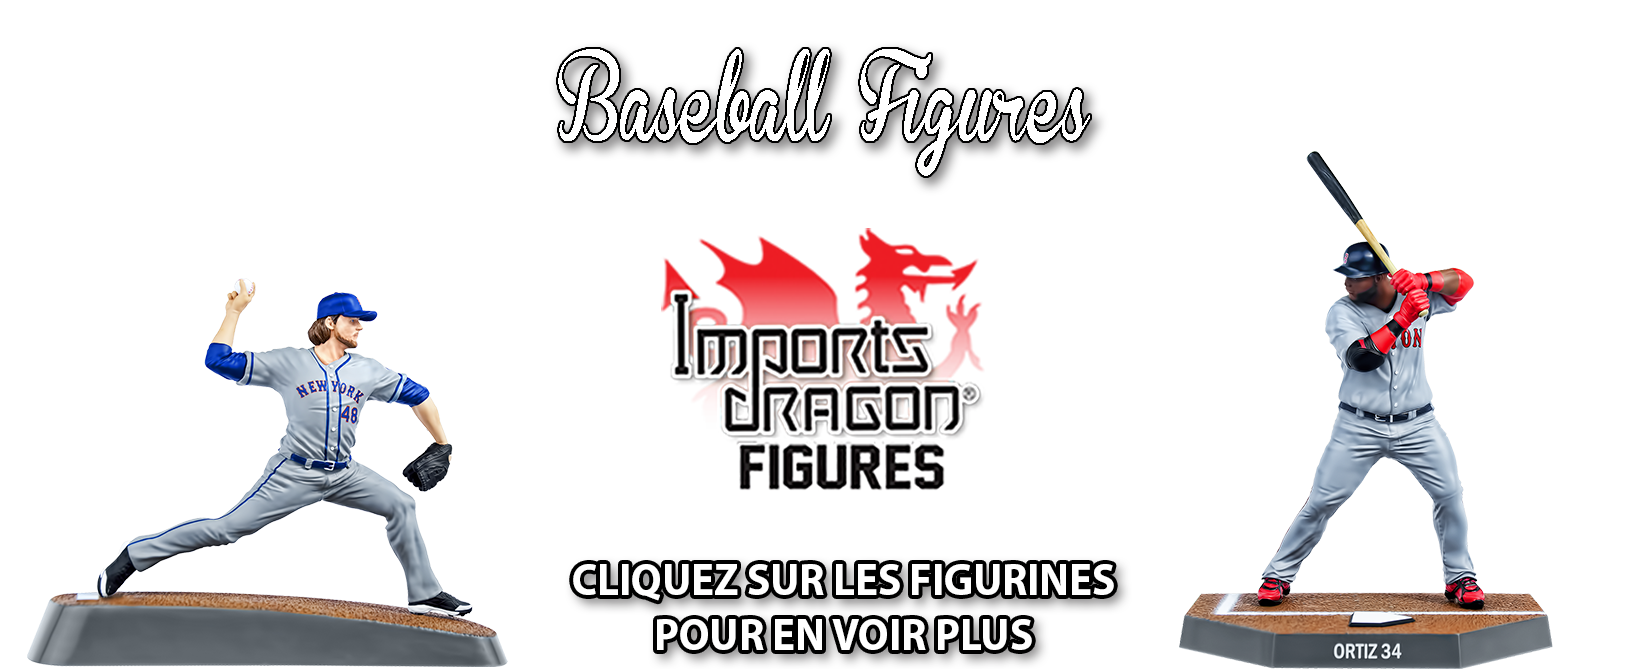 baseball figures home page 1 french